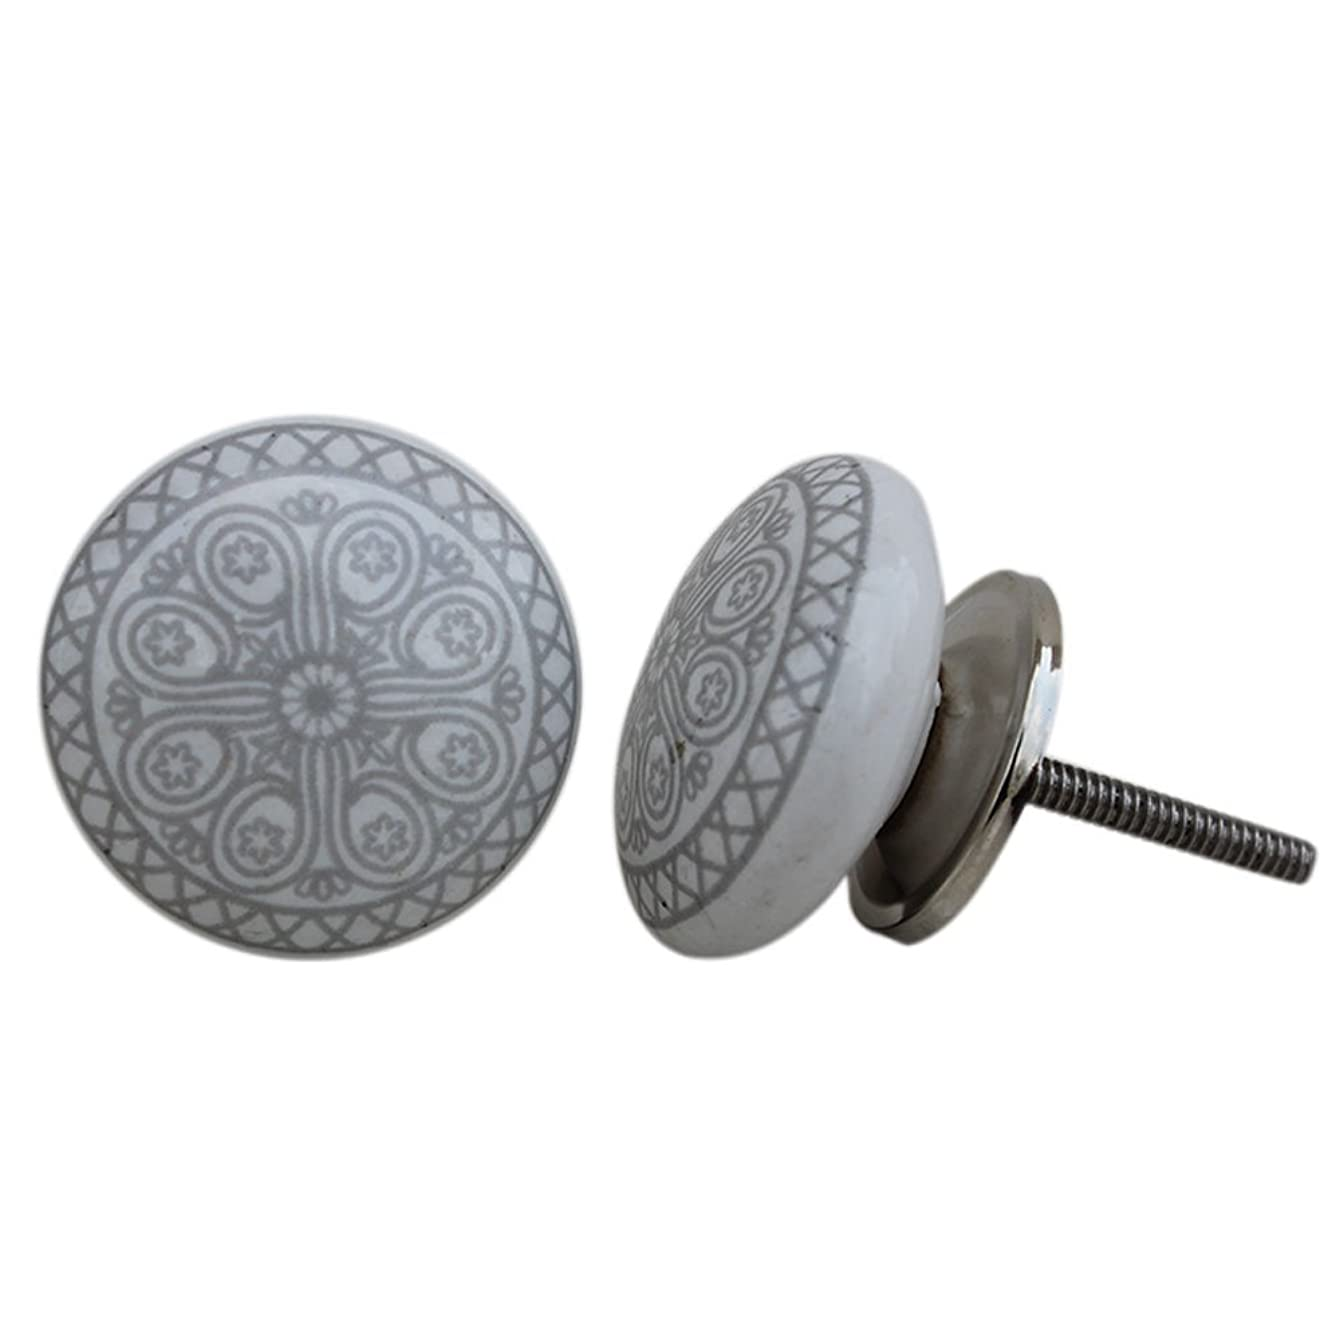 Artncraft 12 pc Door Knobs Hand Printed Ceramic Knobs and Pulls Handle Handmade Silver Finish (Gray & White)